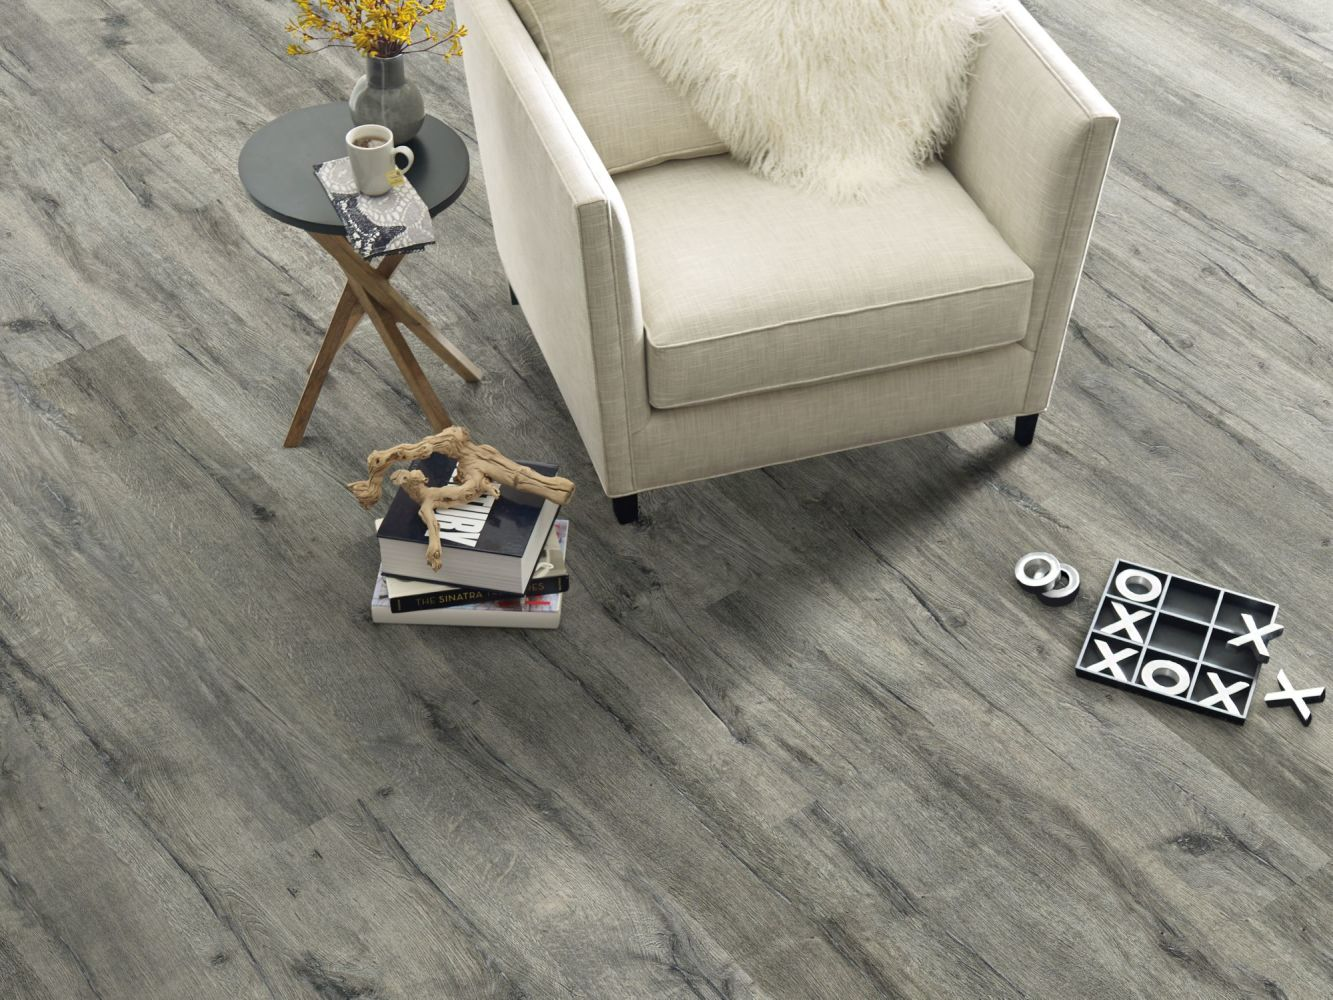 Shaw Floors Resilient Property Solutions Bari HD Plus Alassio 00573_VE315